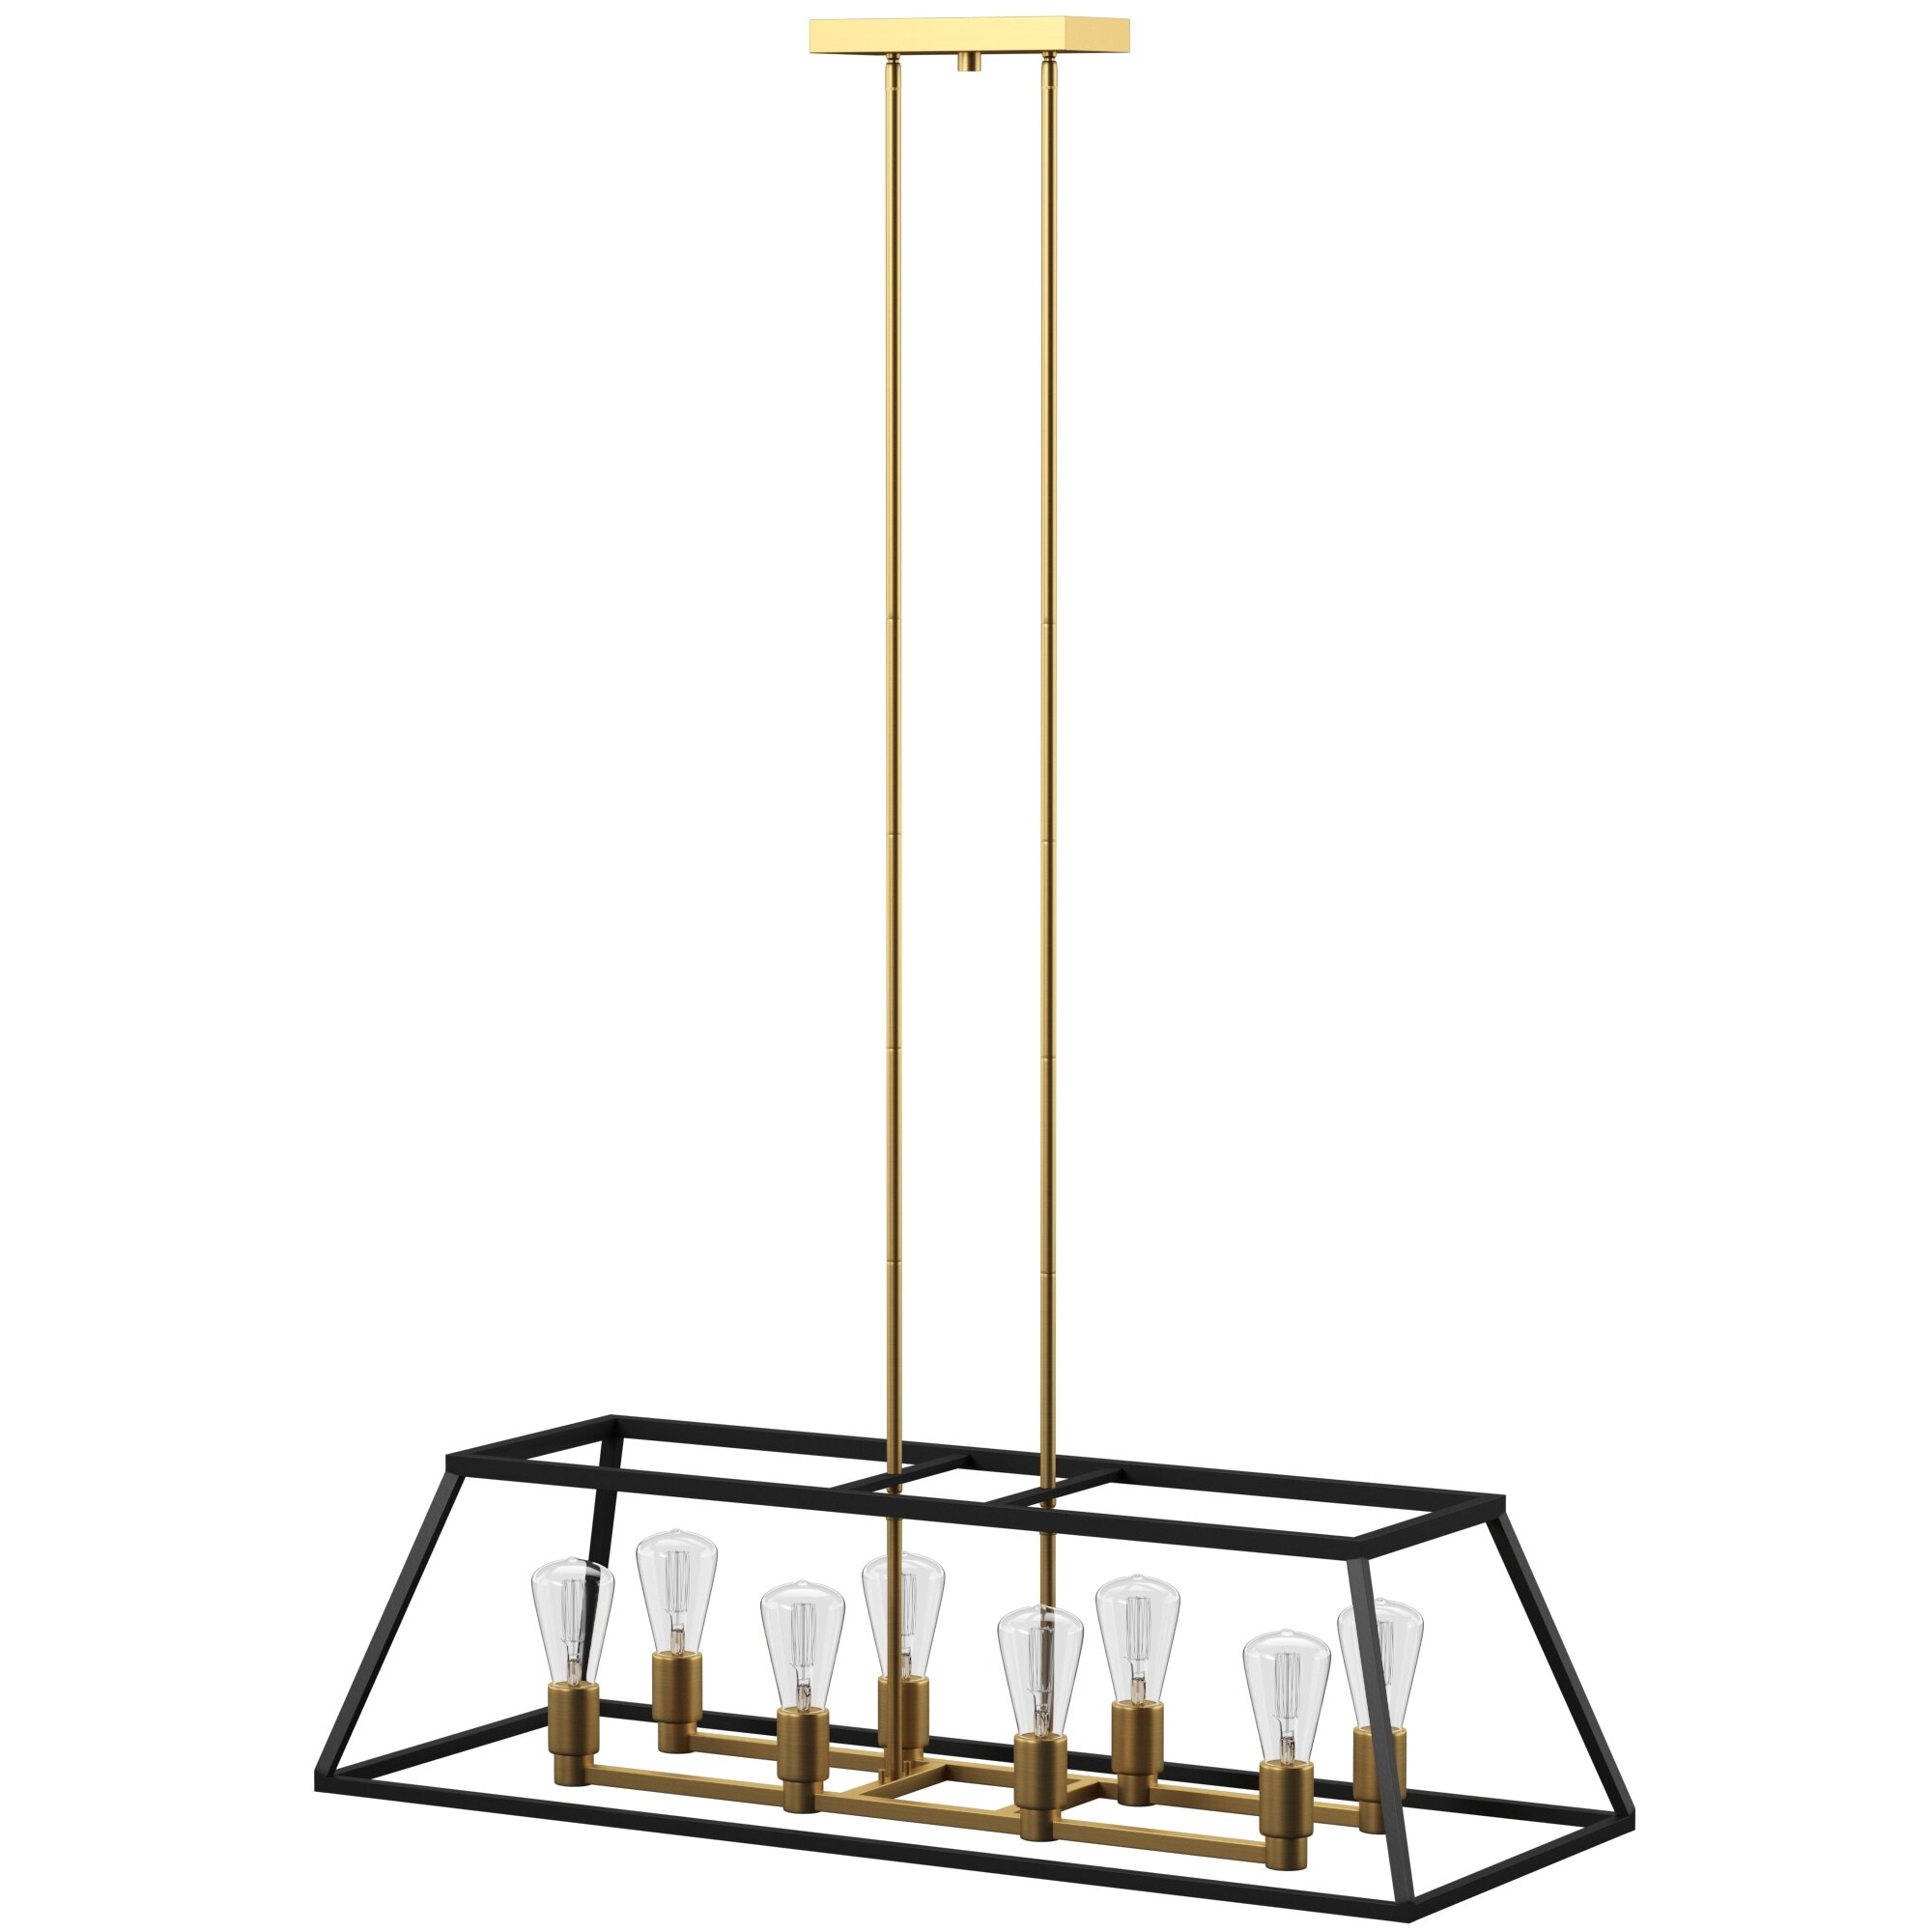 Shisler 8 Light Kitchen Island Linear Pendant With Sousa 4 Light Kitchen Island Linear Pendants (View 19 of 30)